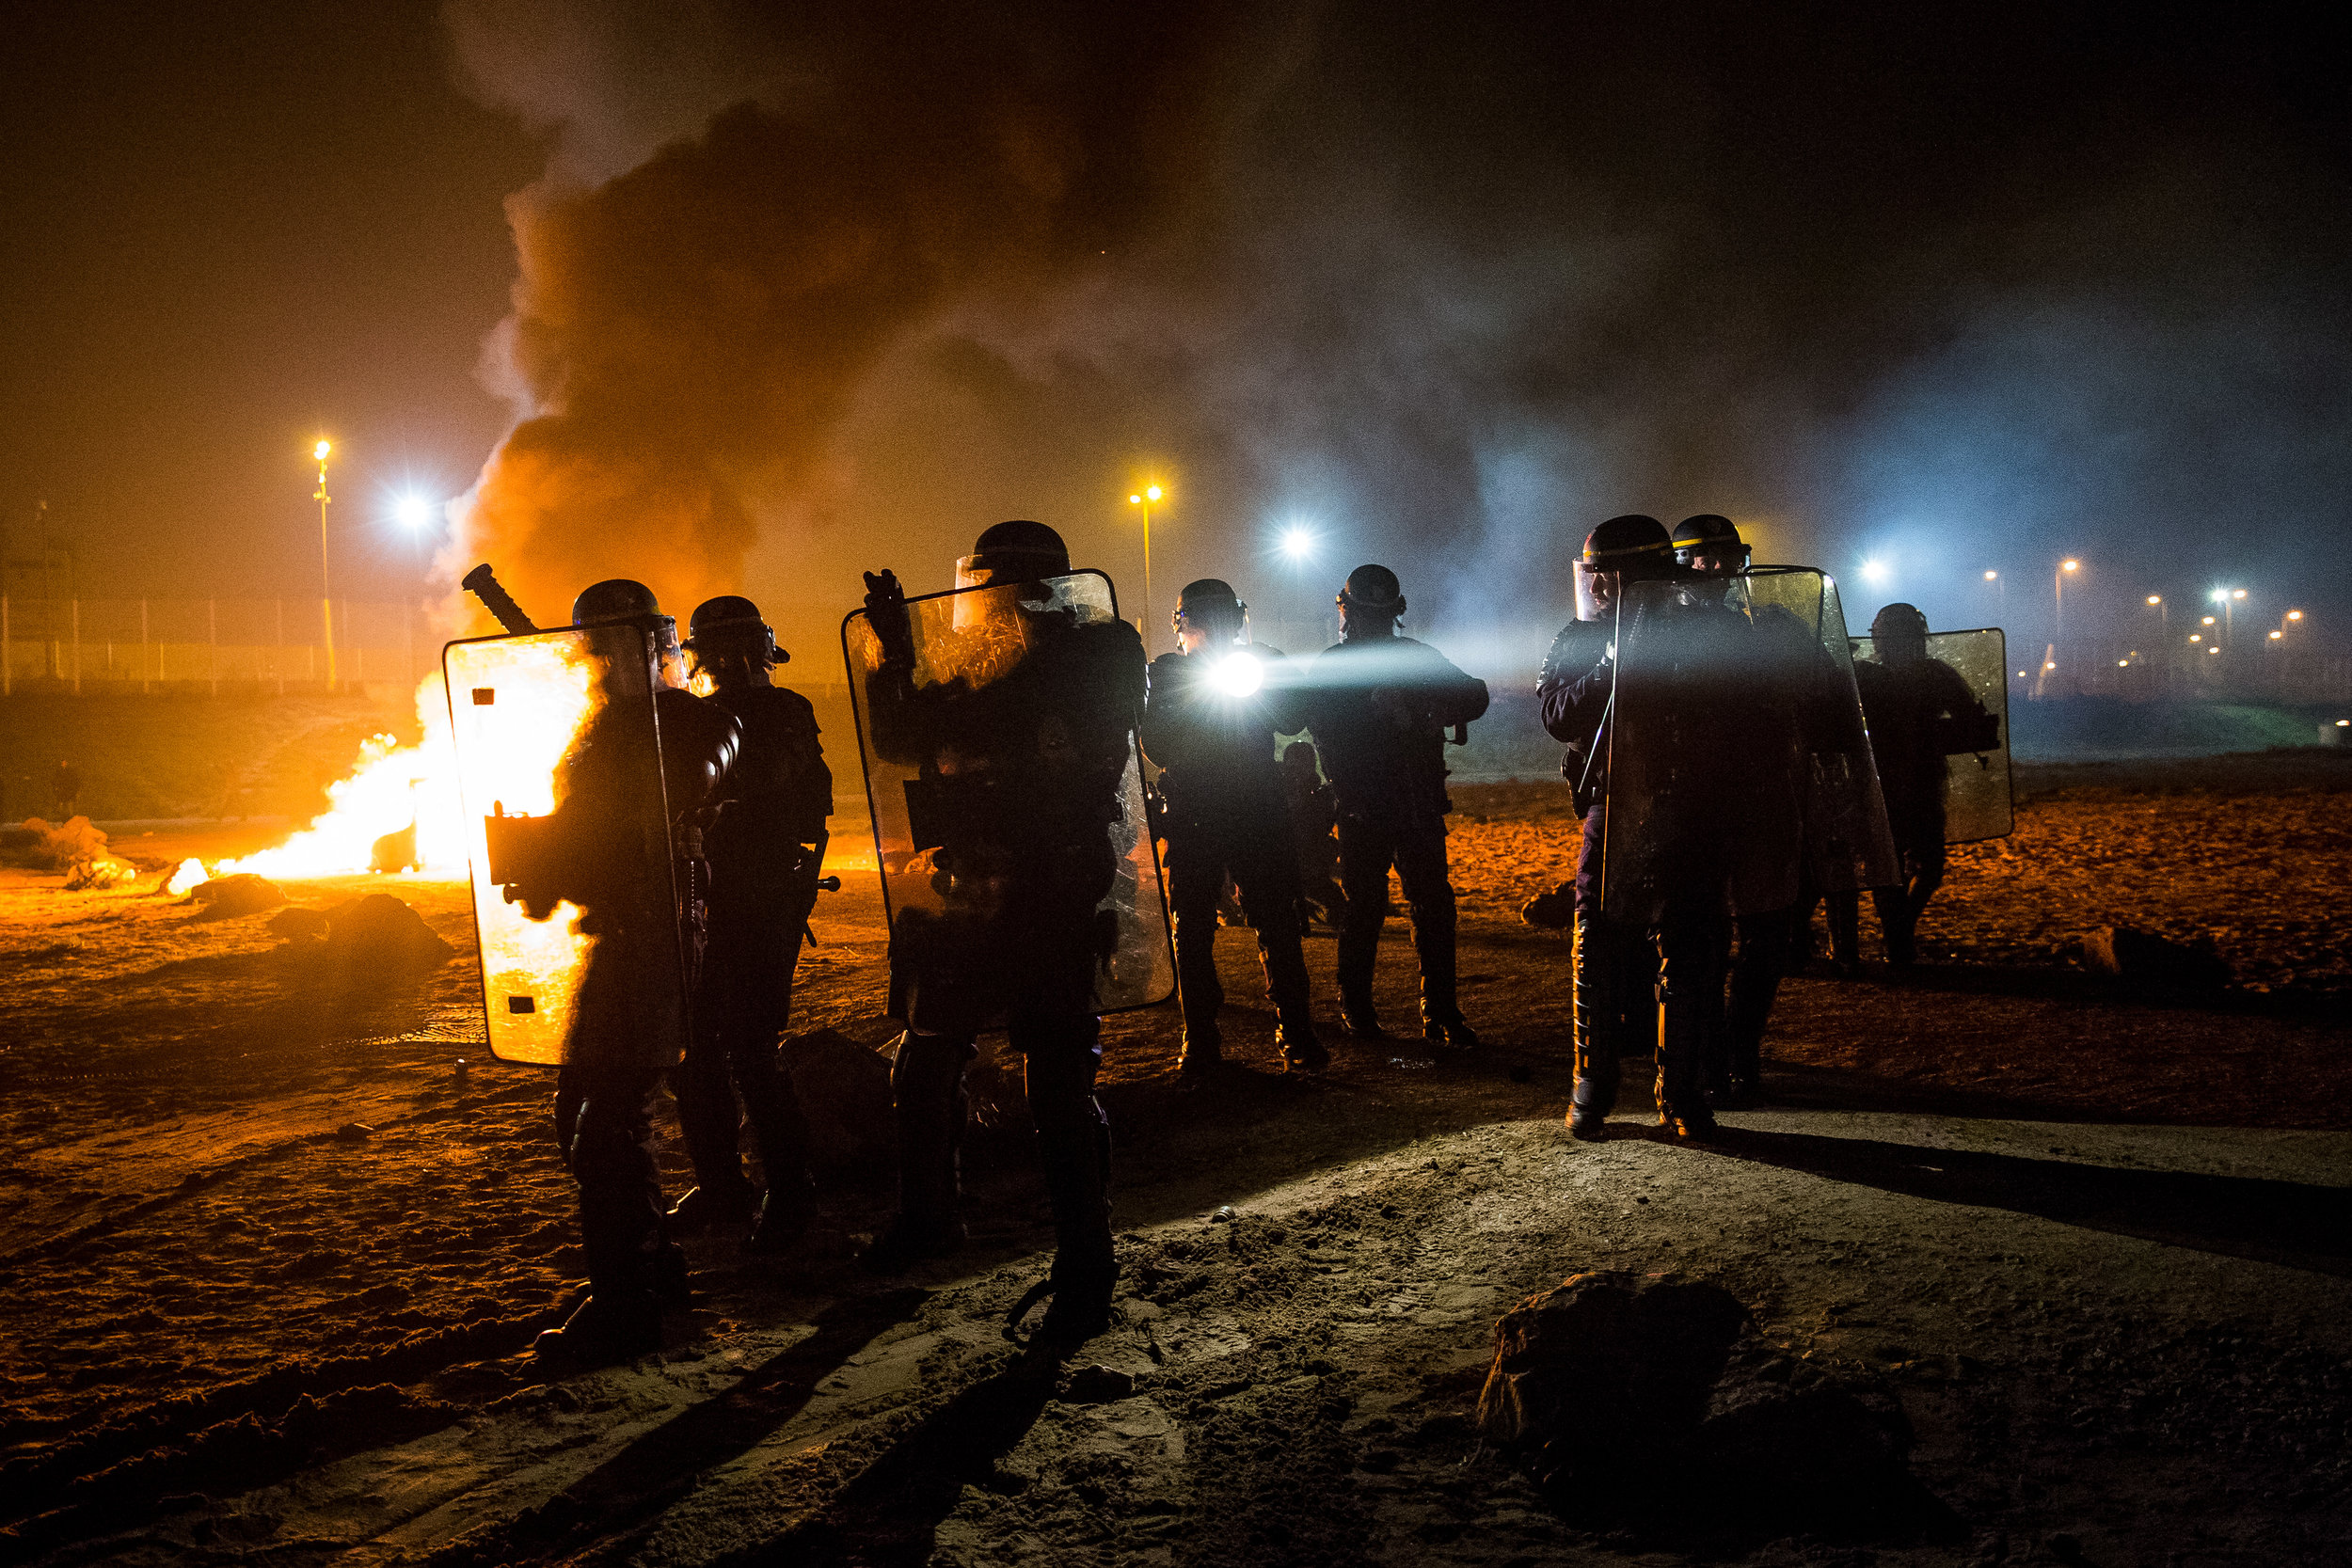 A portable chemical toilet burns as French riot police advance towards the Jungle migrant camp during a clash with migrants just outside Calais.Photo by Jack Taylor  23 October 2016